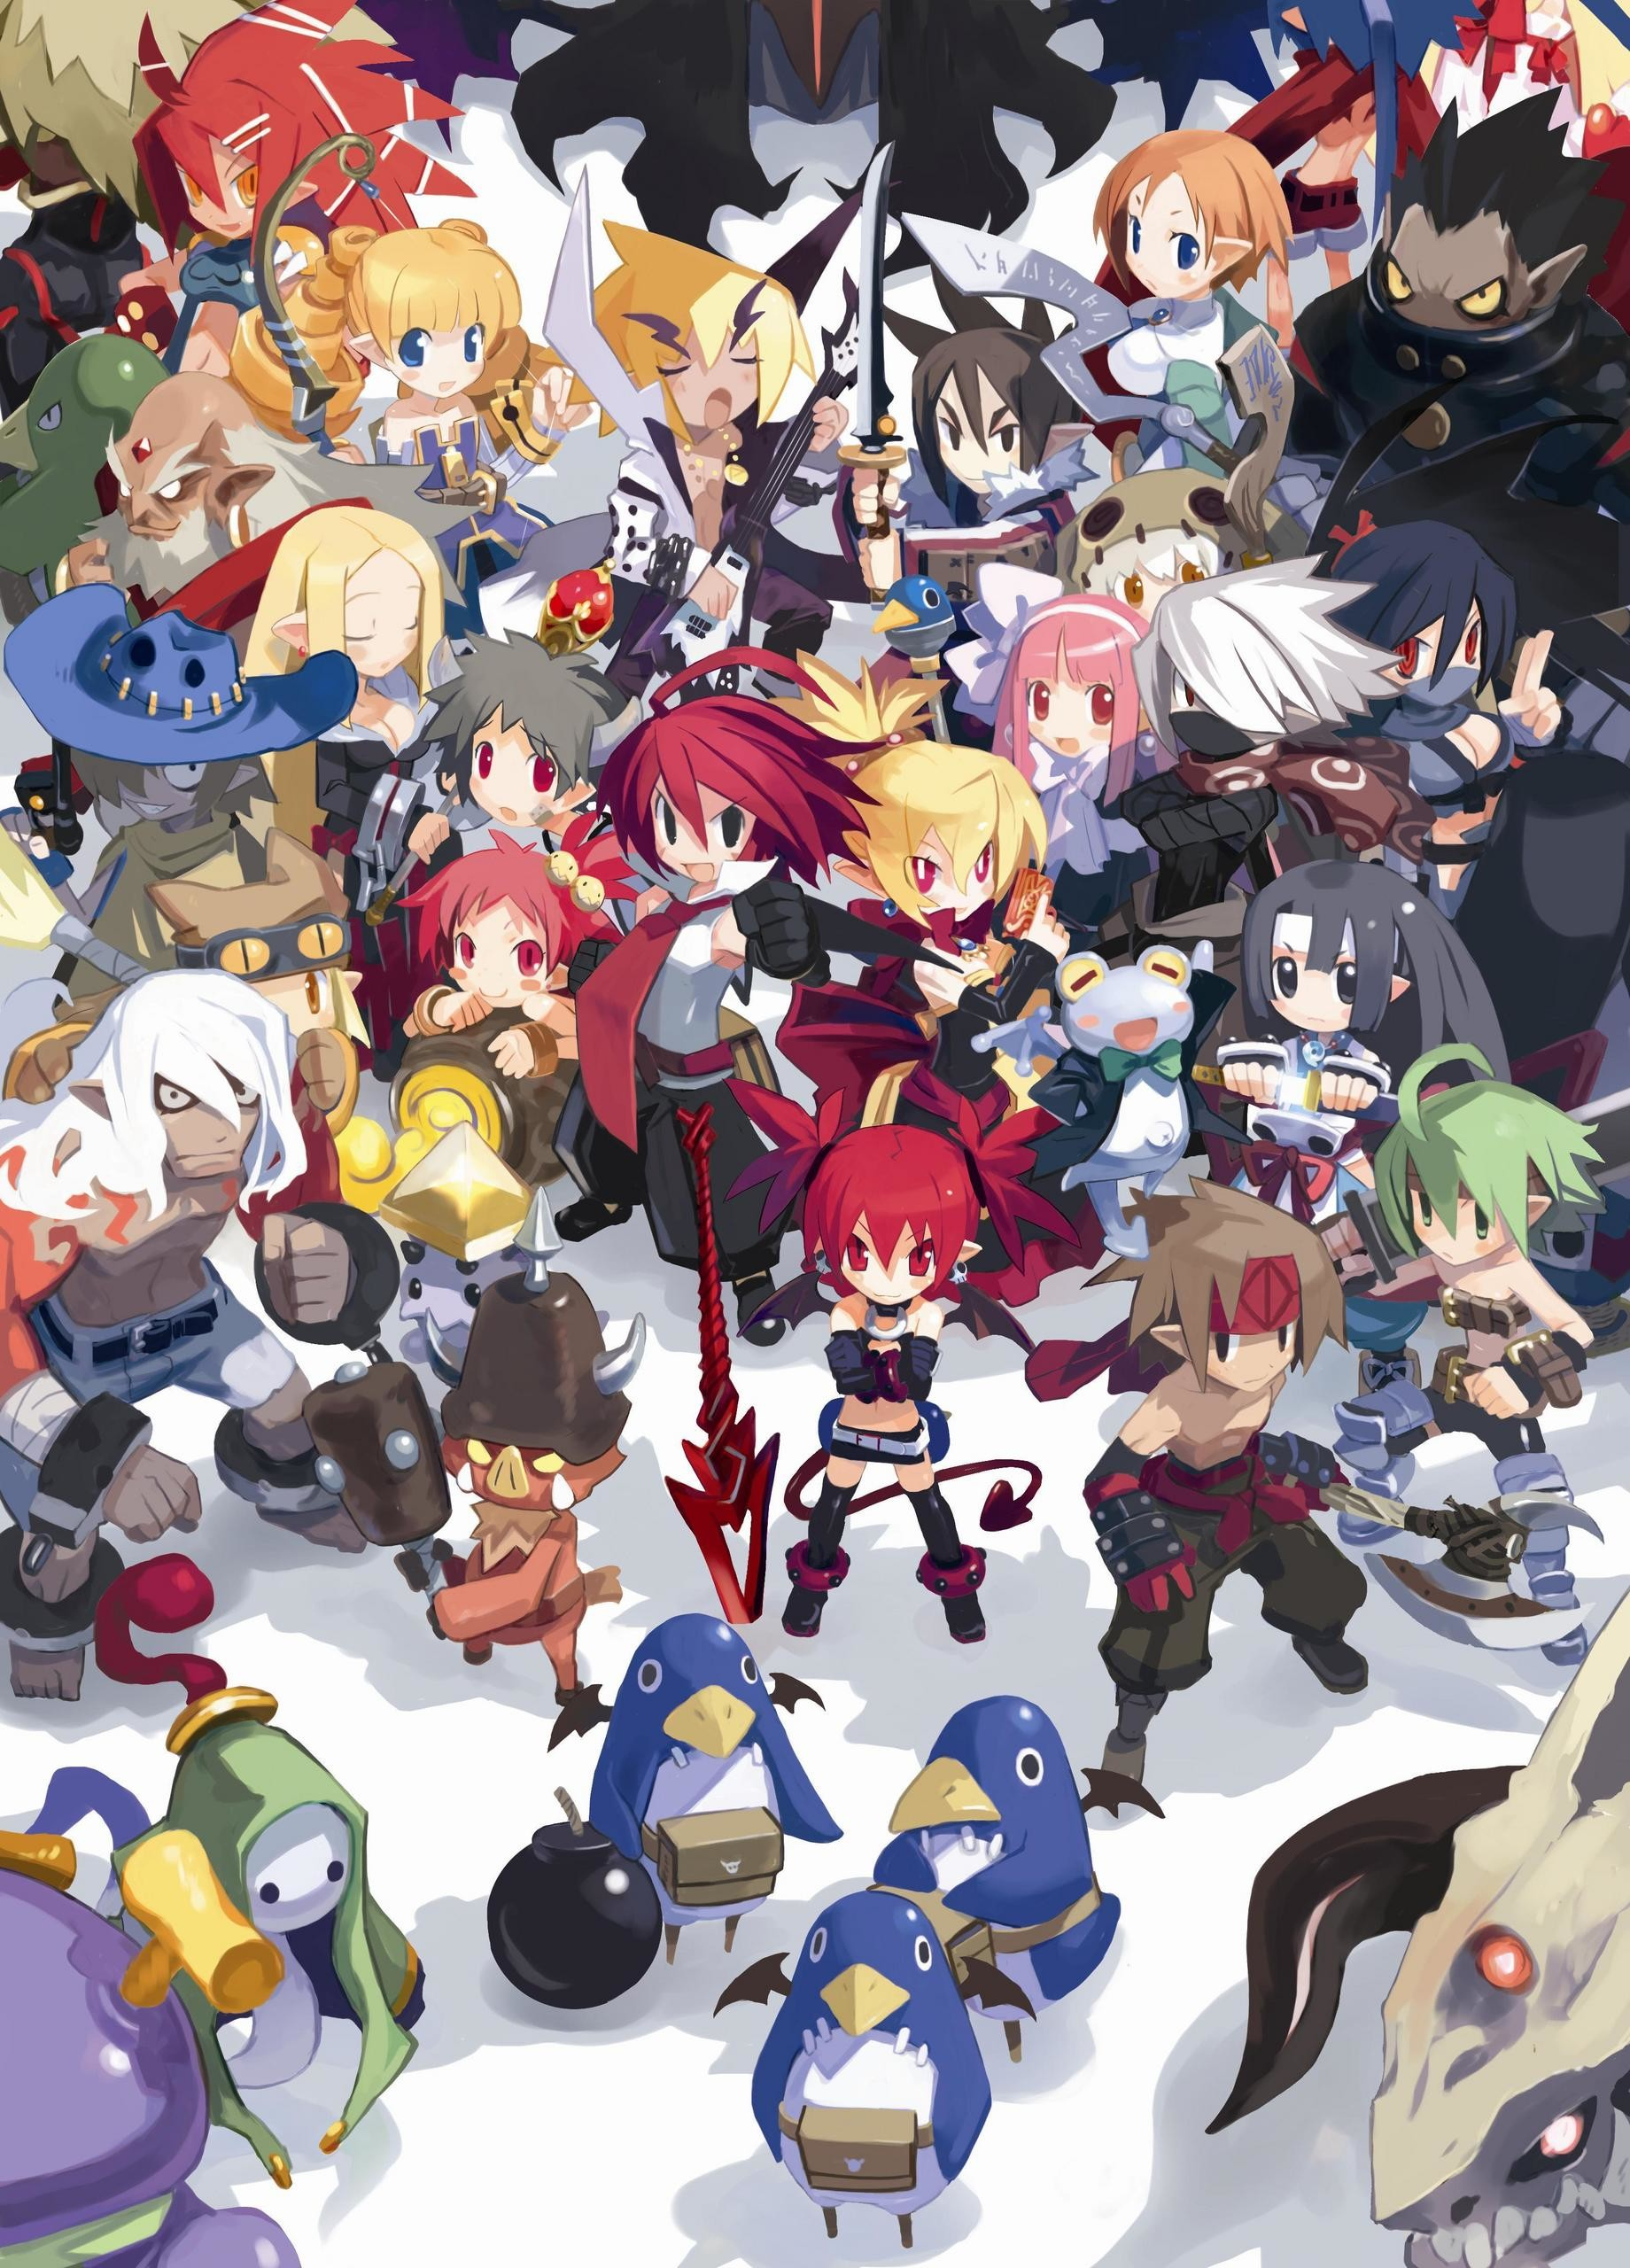 1840x2560 disgaea 2 images disgaea 2 cover HD wallpaper and background photos